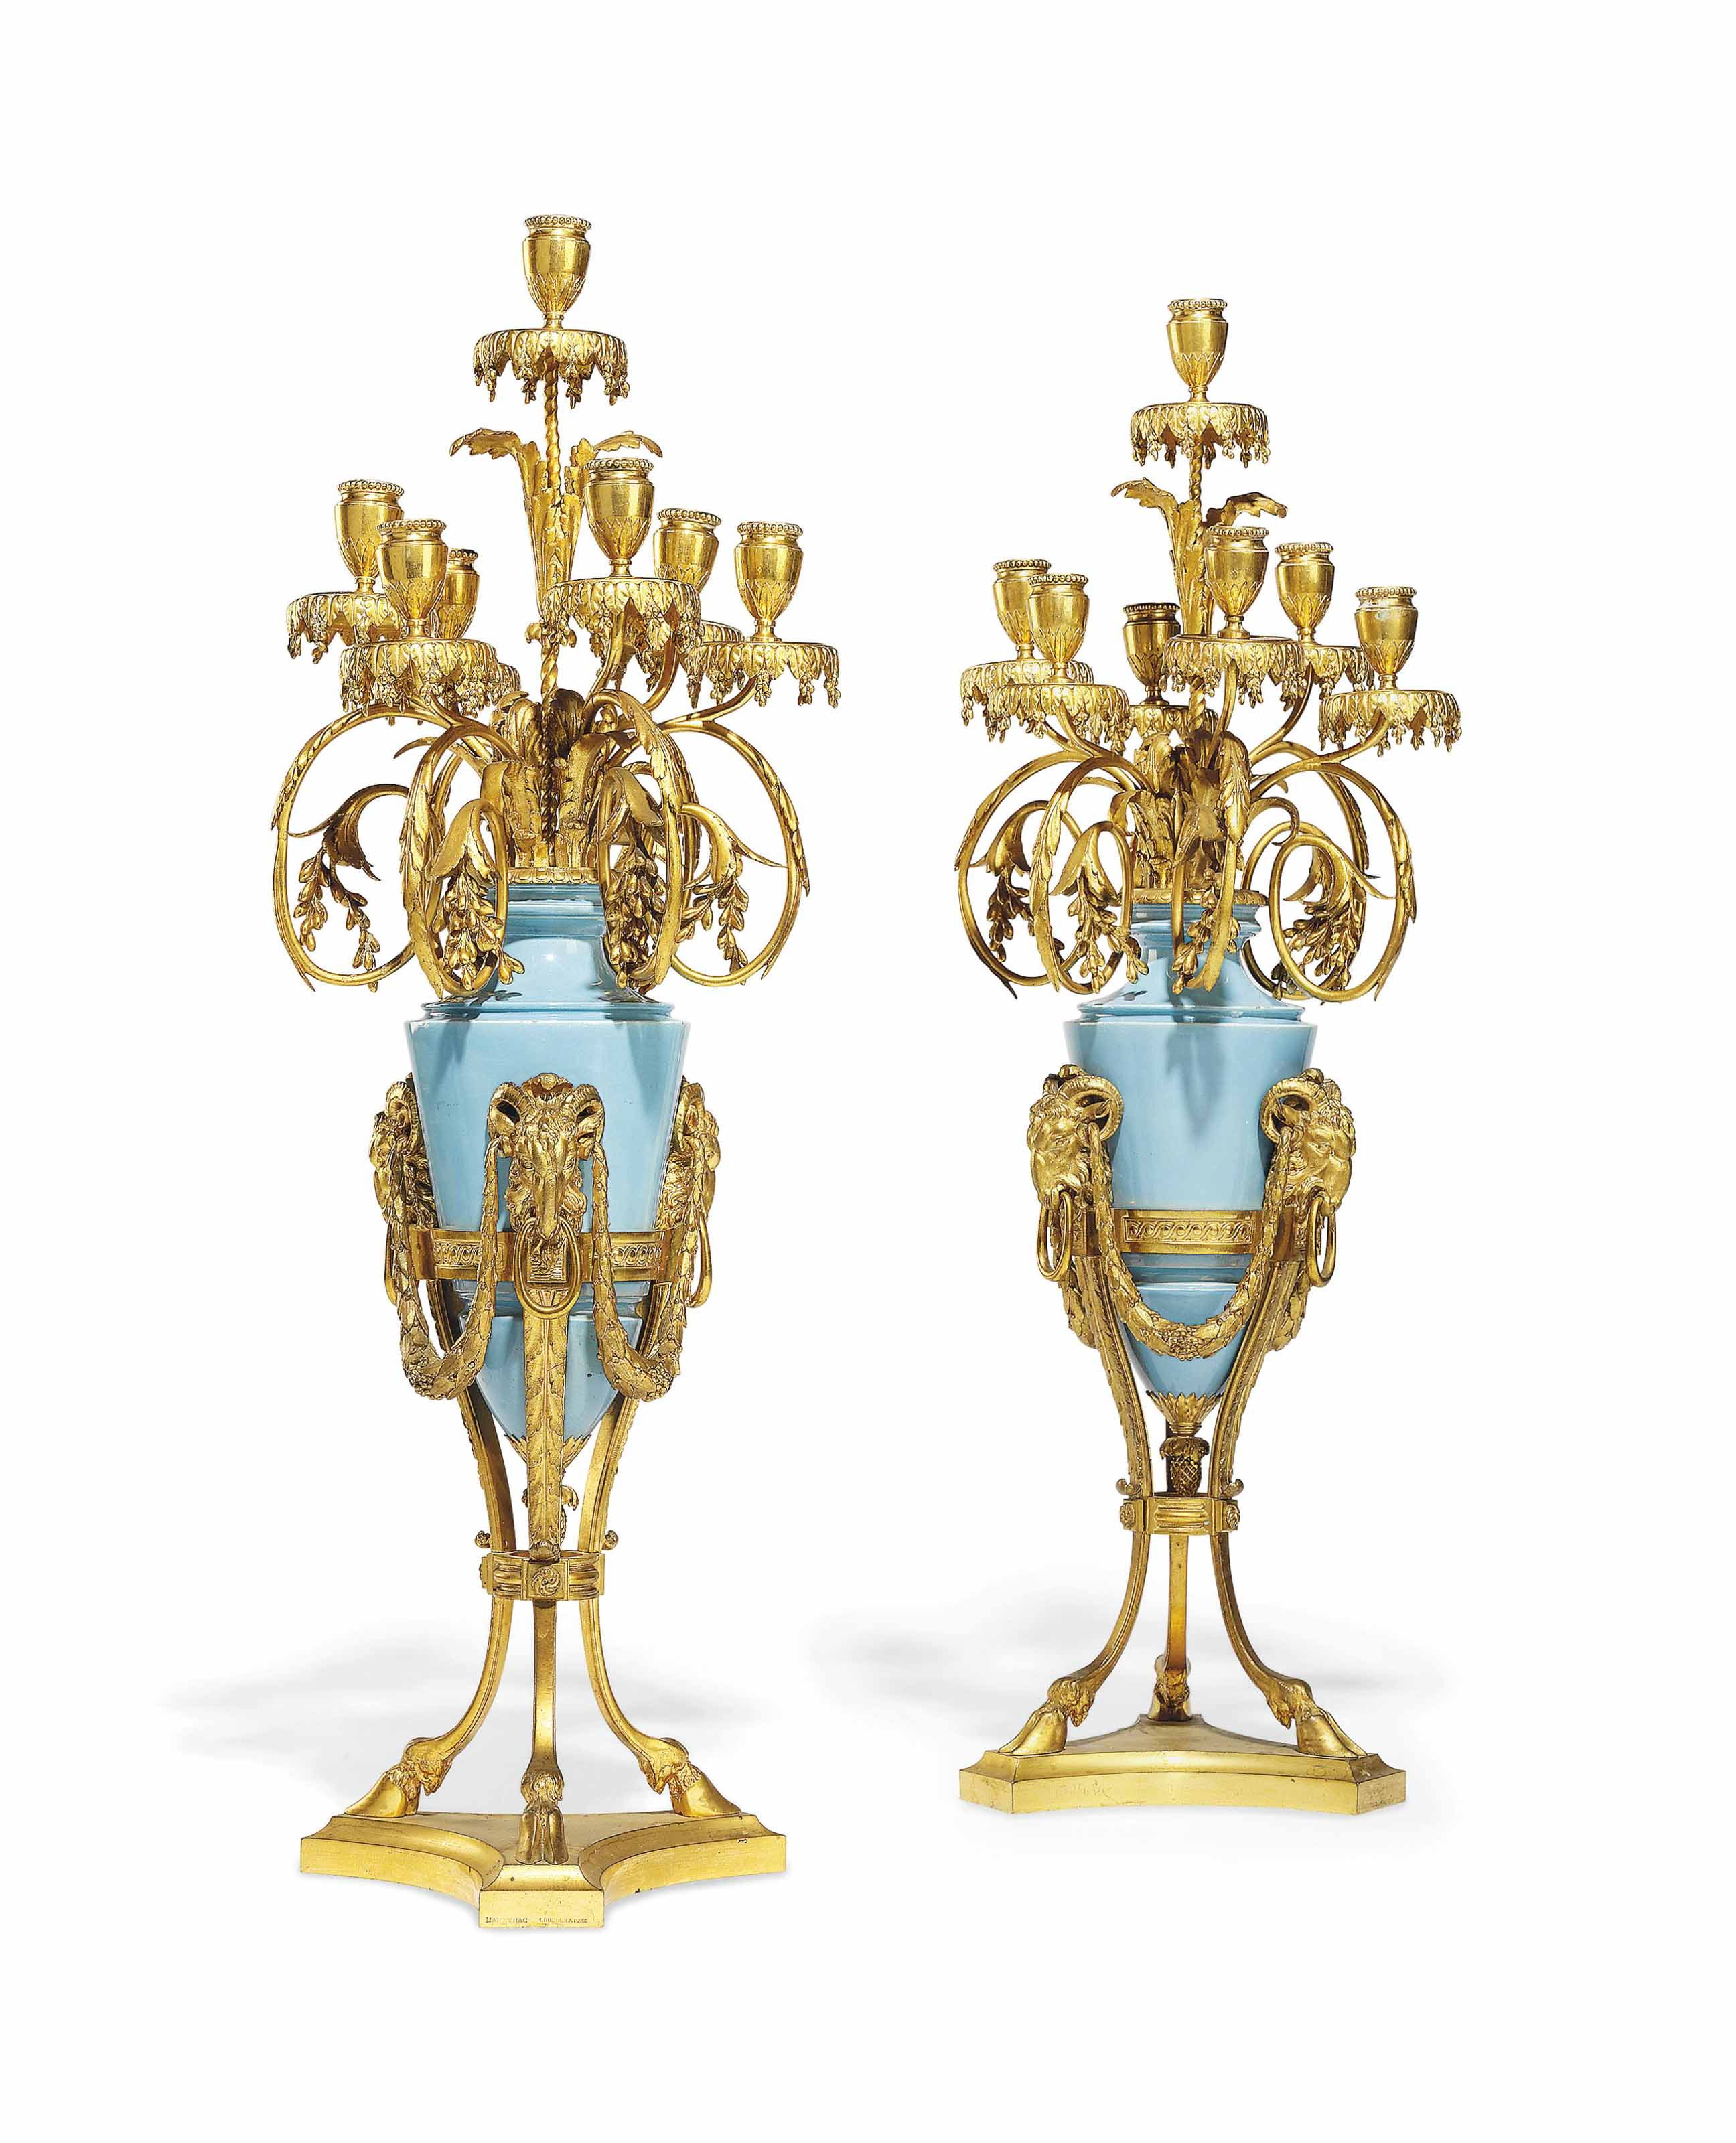 A PAIR FRENCH ORMOLU AND PALE BLUE GLAZED EARTHENWARE SIX-LIGHT CANDELABRA